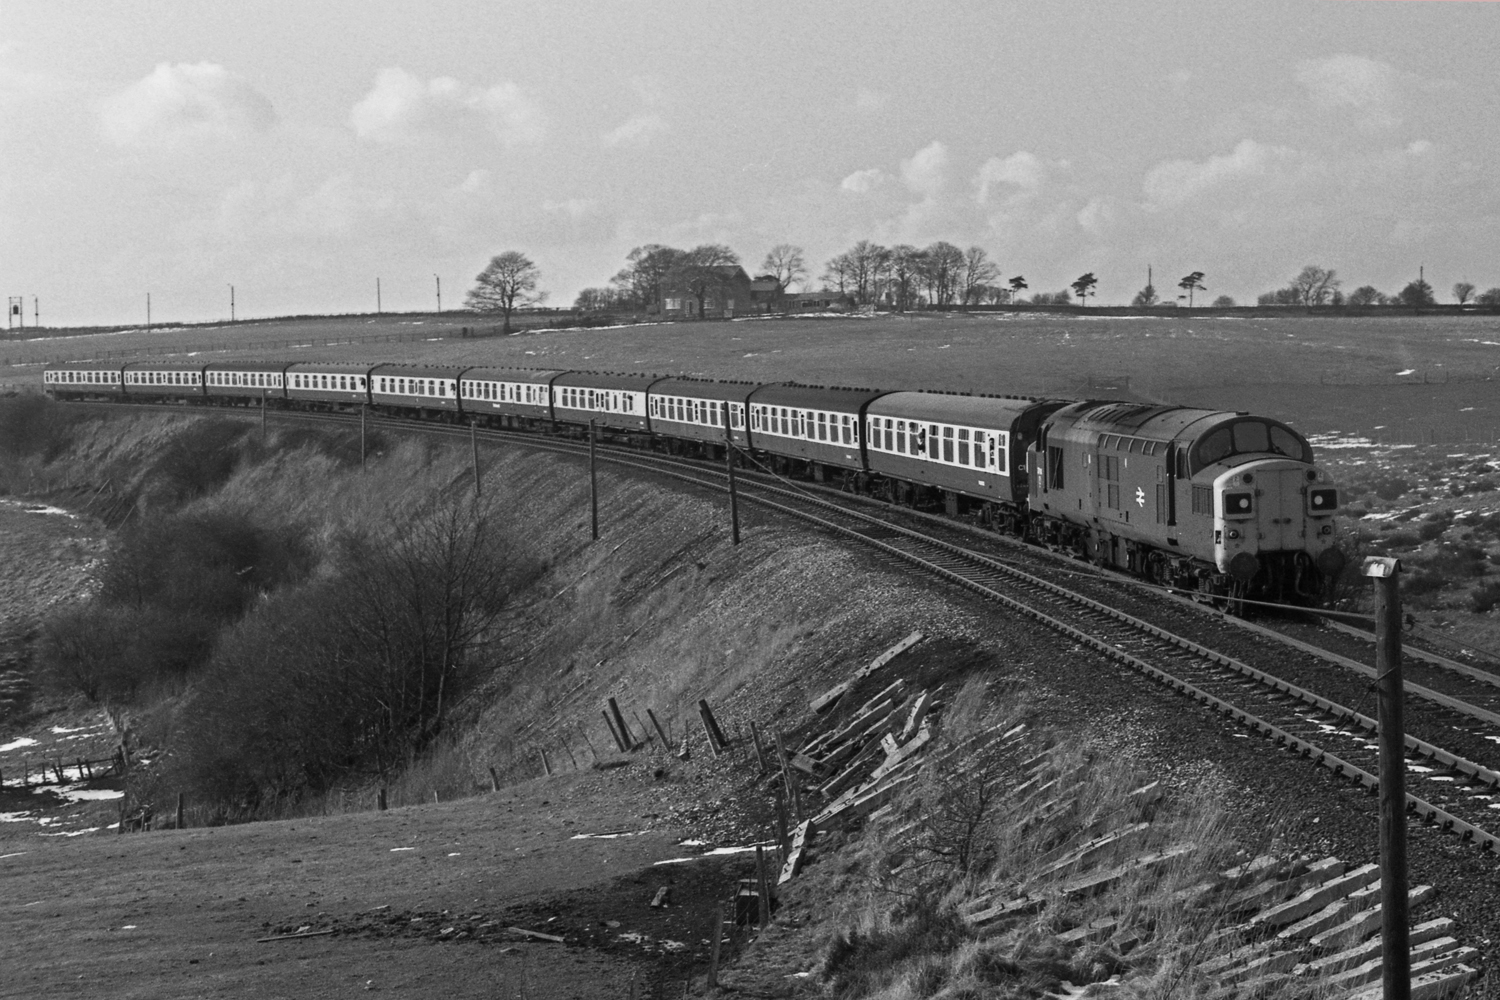 Tyne-Tees Ltd. Brooms curve,Leadgate 22-3-80 37 114